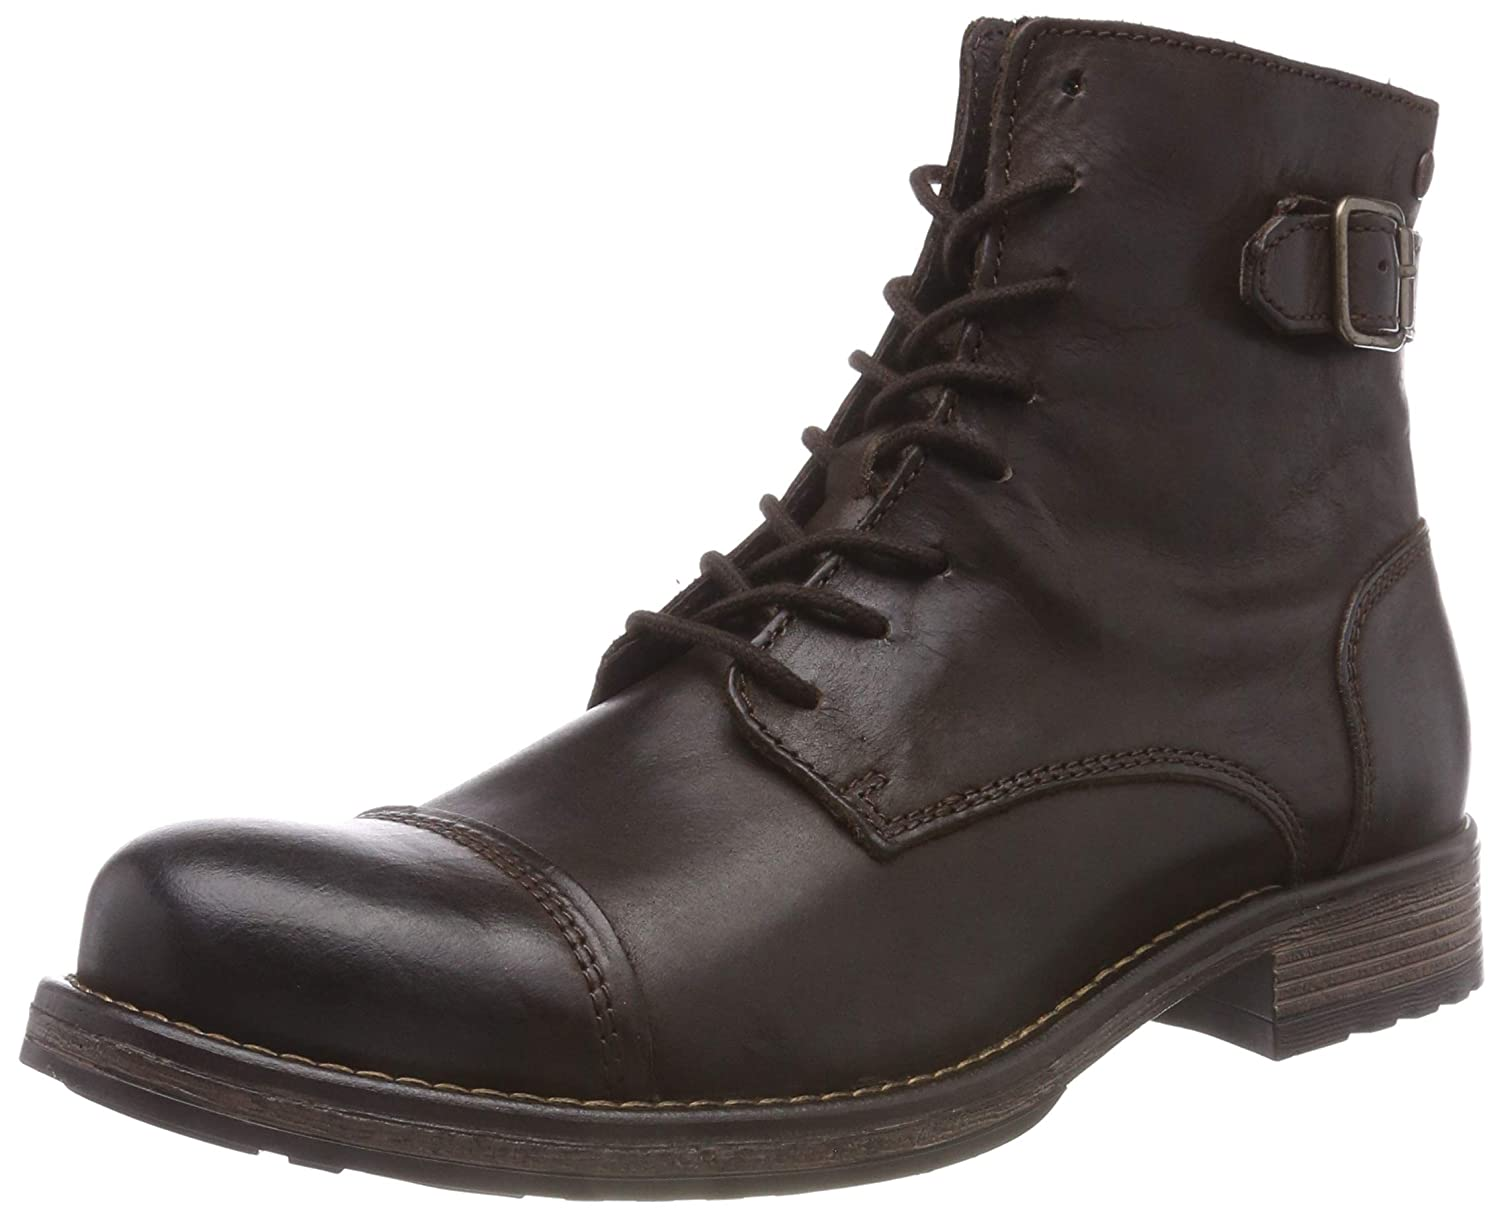 TALLA 43 EU. Jack & Jones Jfwsiti Leather Brown Stone, Botas Clasicas para Hombre